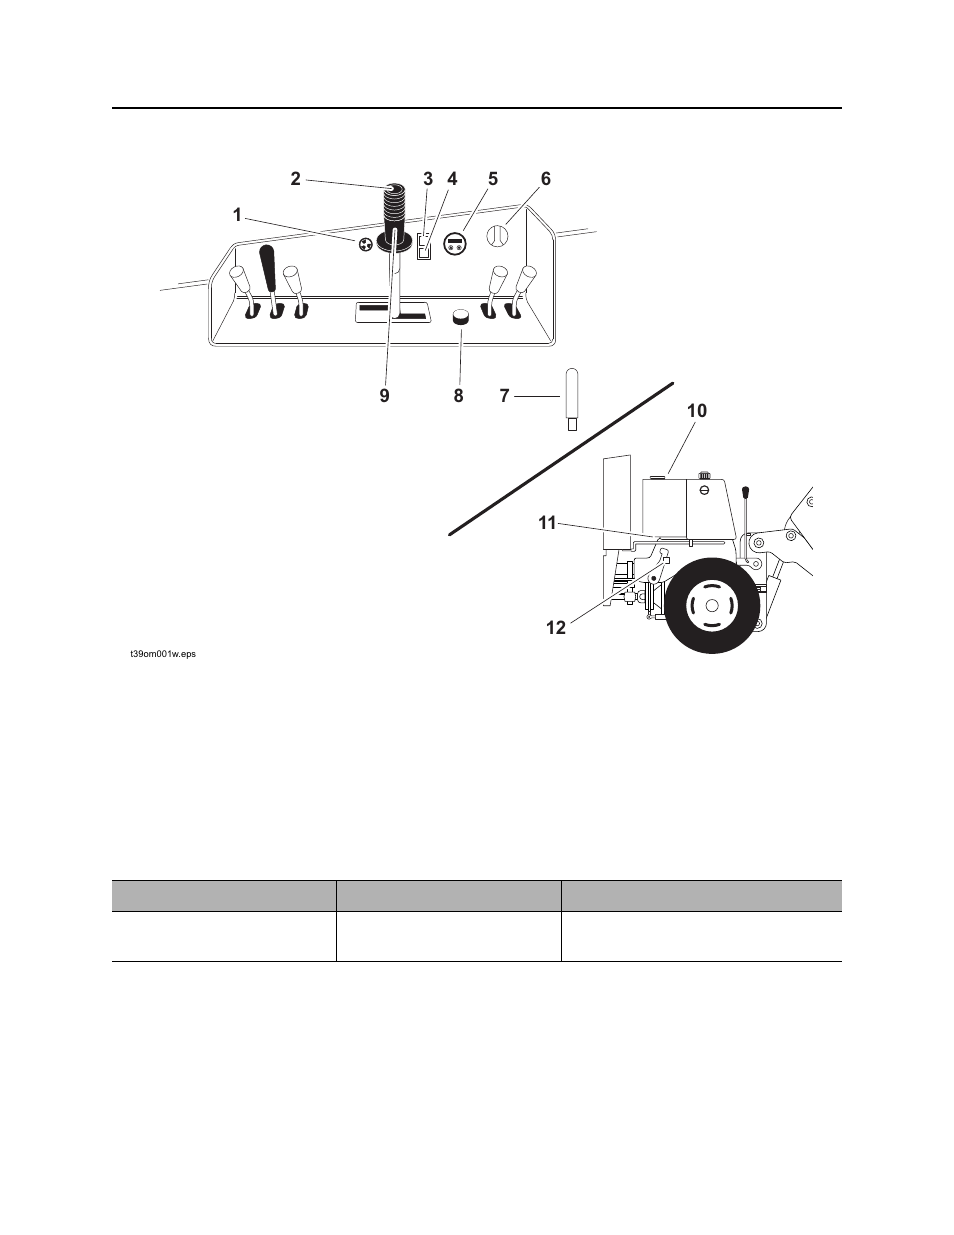 Ditch Witch Frame Diagram - House Wiring Diagram Symbols • on ditch witch 1230, ditch witch rt40, ditch witch ht115, ditch witch rt115, ditch witch 410sx, ditch witch rt55, ditch witch rt120, ditch witch rt80, ditch witch rt45, ditch witch rt100, ditch witch rt150,